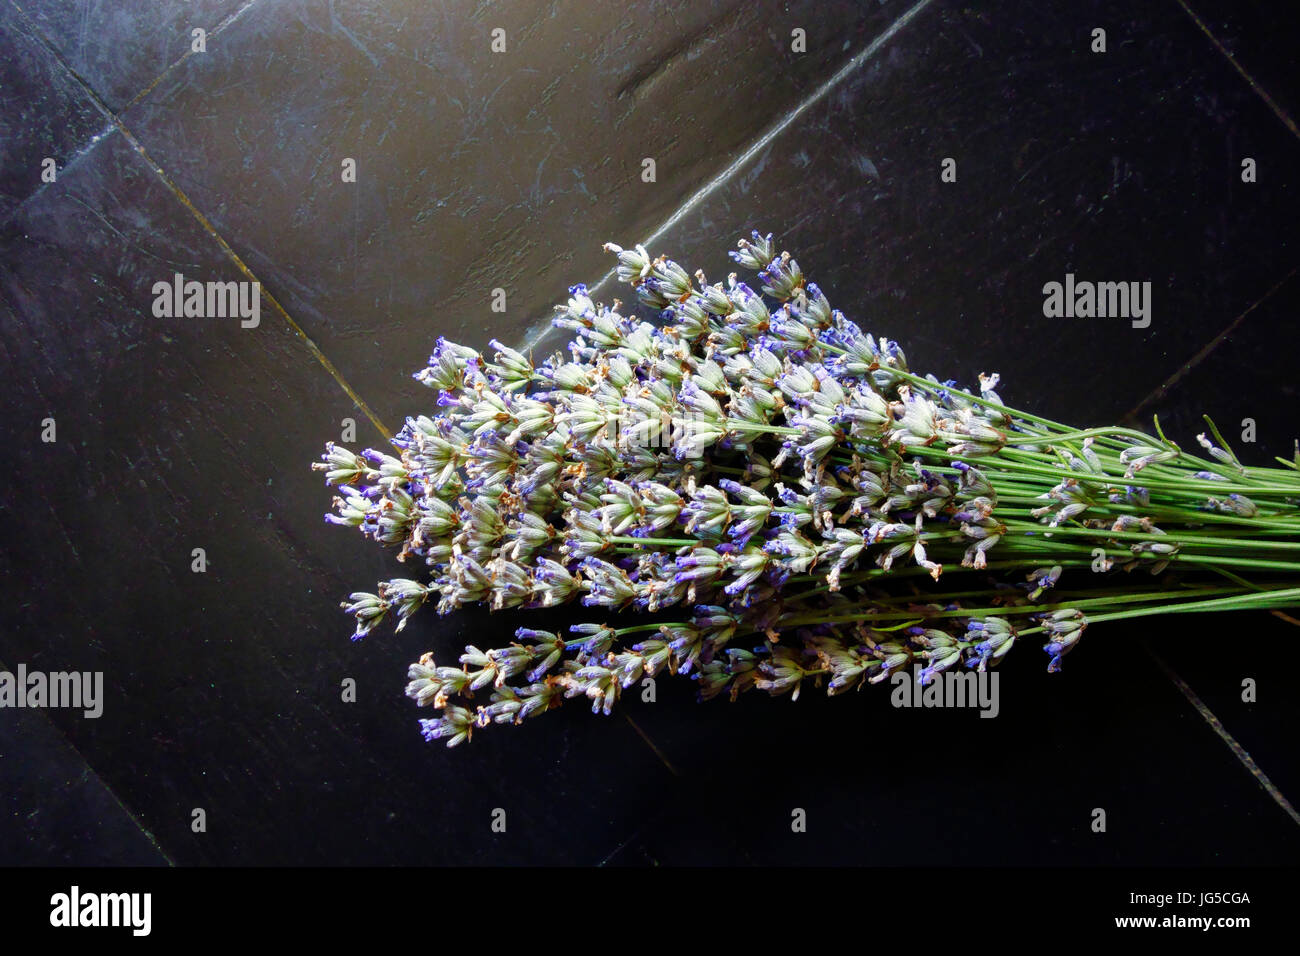 Bouqet of lavender - Stock Image